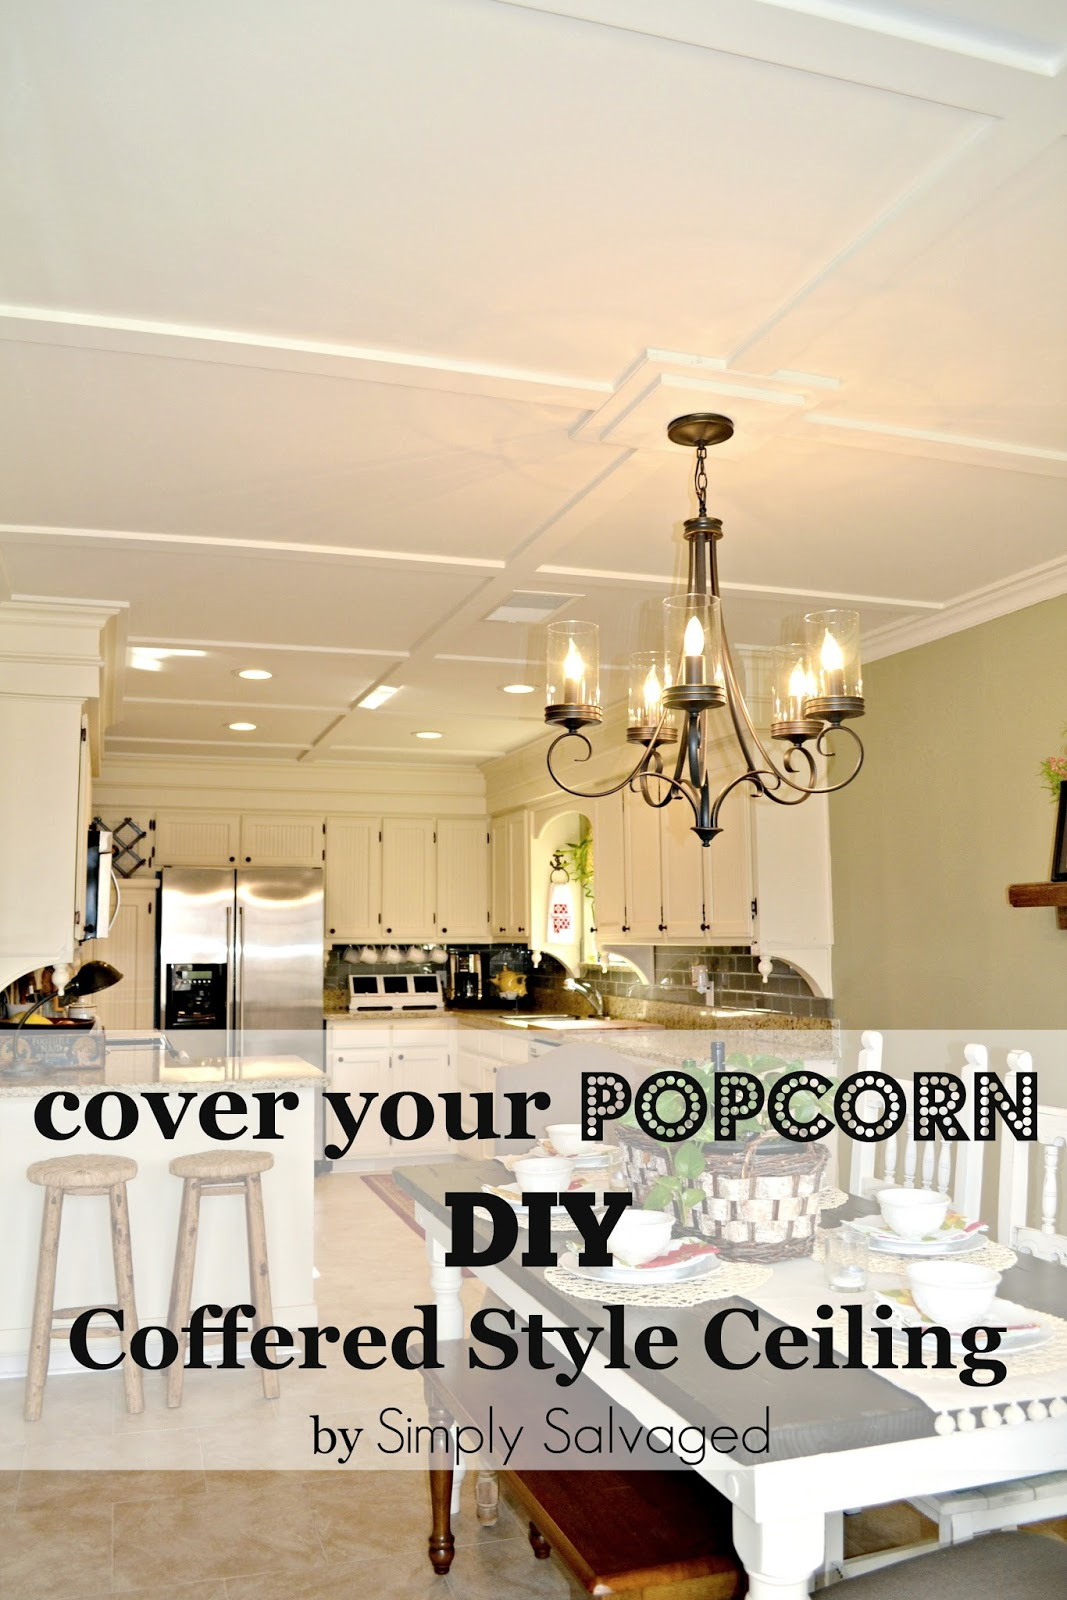 Simply Salvaged: Cover Your Popcorn with a DIY Coffered Style Ceiling